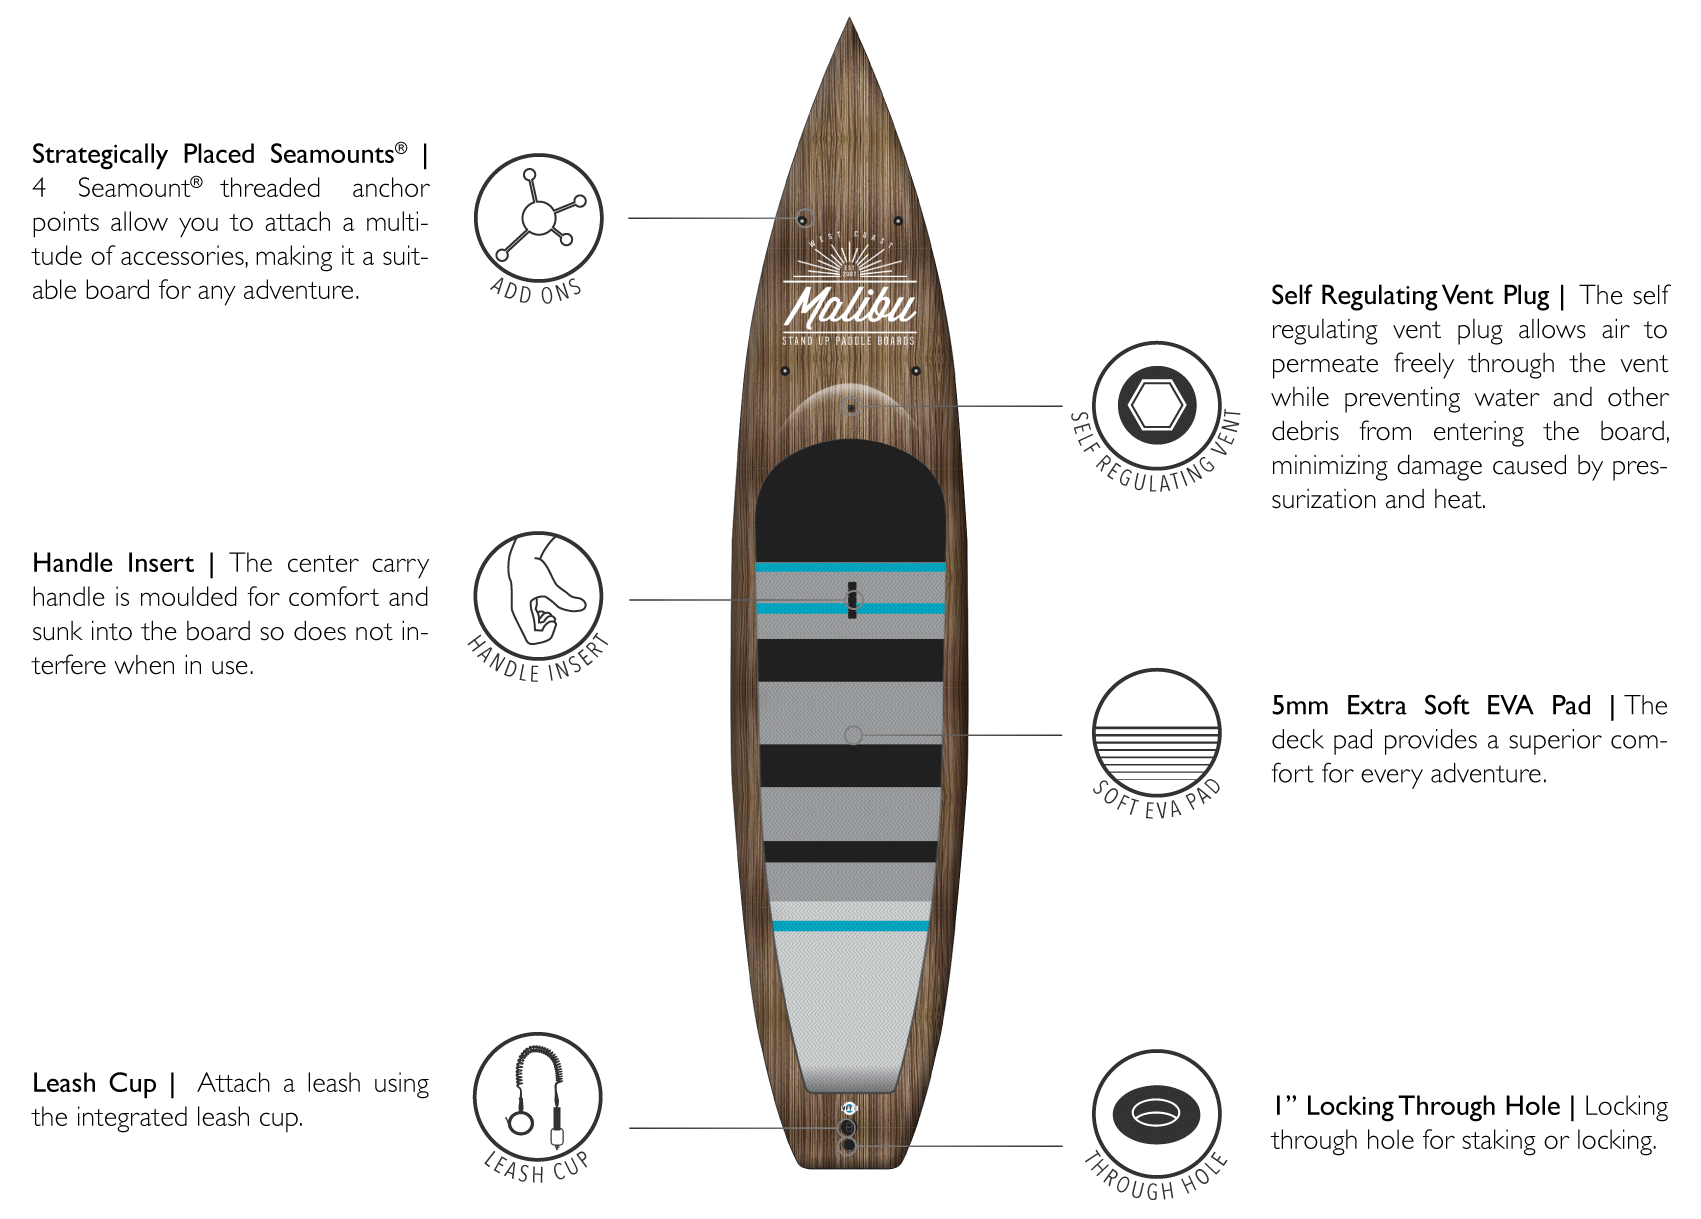 Malibu tour pau hana sup paddle board features strategically placed seamount system threaded anchor points center grab handle designed for comfort maneuvering the board leash cup to attach coiled leash self regulating vent plug 5mm Eva pad 1 inch locking though hole